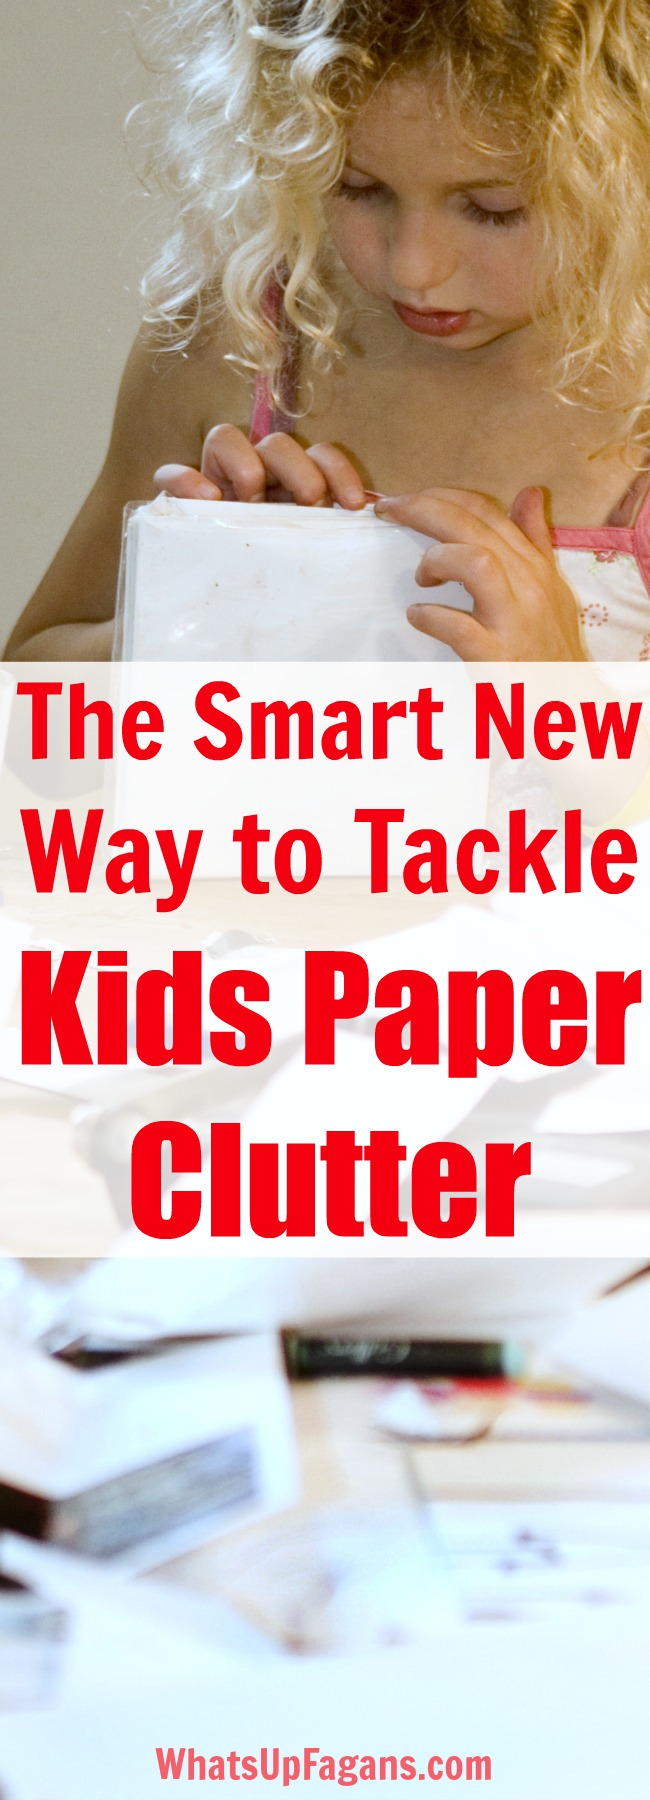 Reduce Kids Paper Clutter in Your Home Organization and Declutter Sessions   Keepy App   Review   Save Keep Preserve Memories and Kids Artwork   Video Storage App  